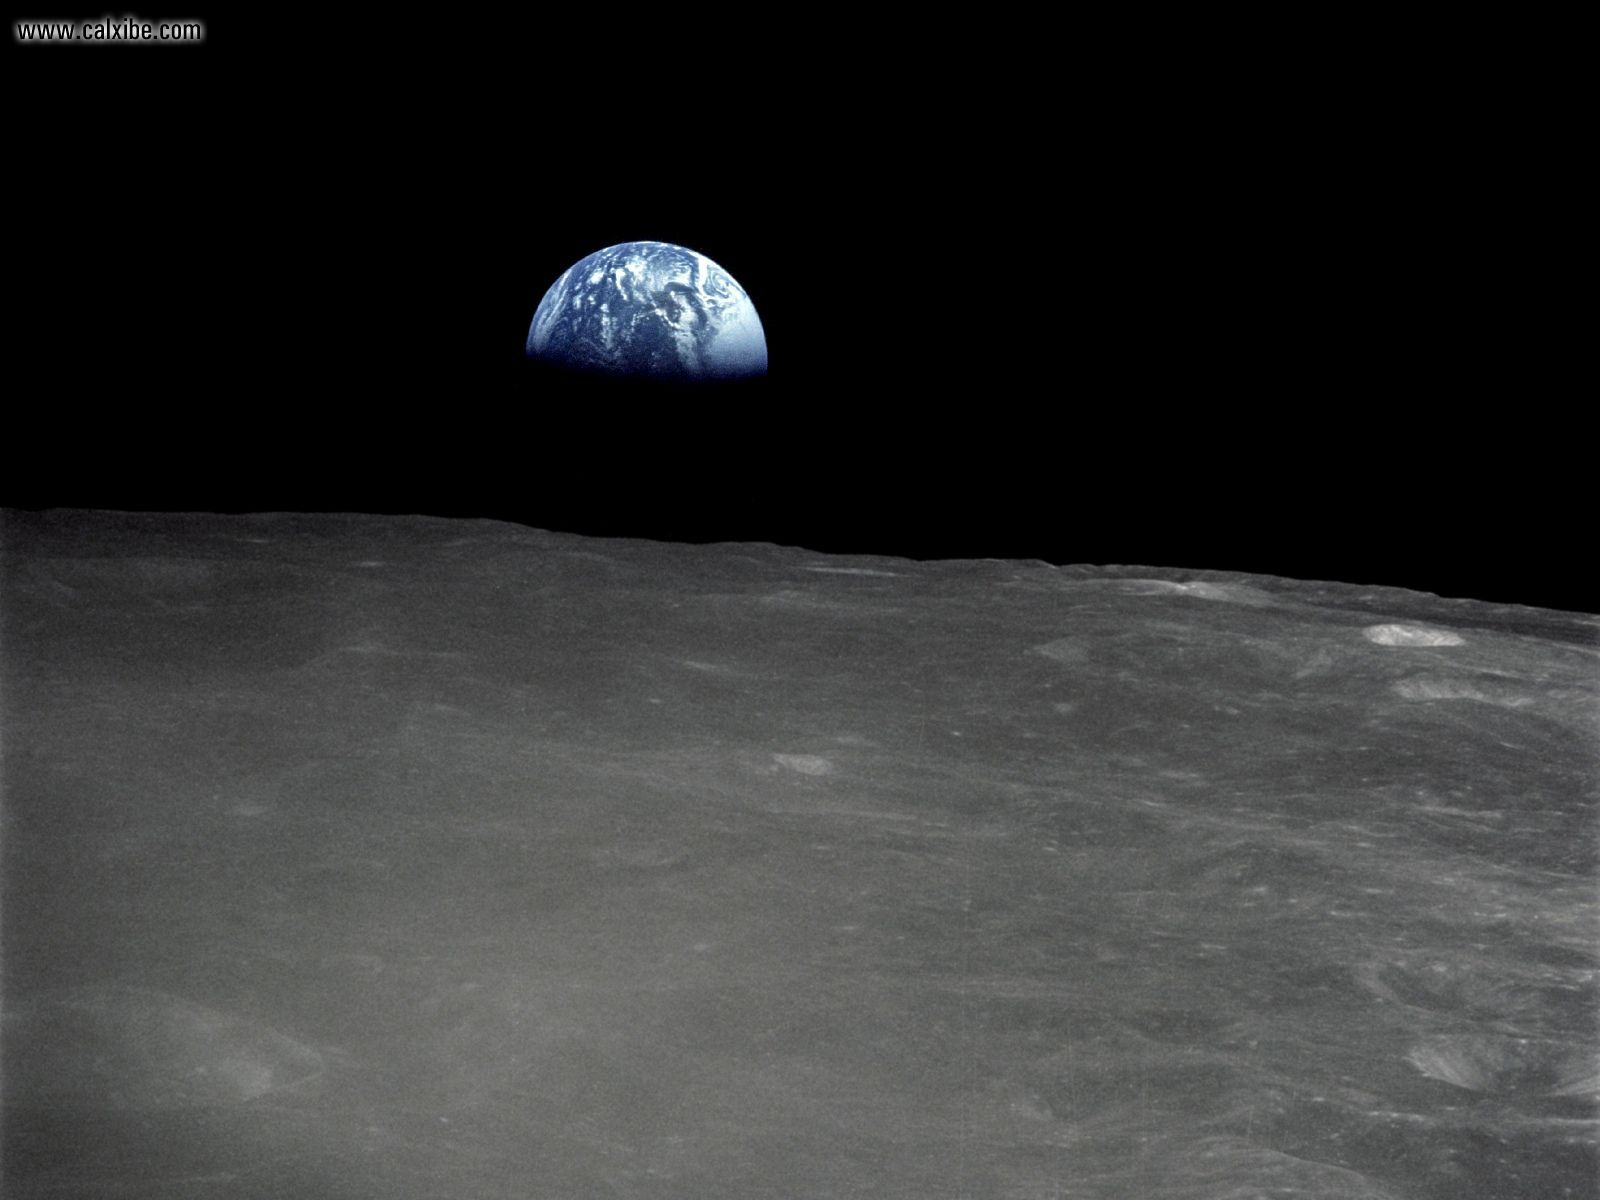 space earth rise above the moon surface picture nr 17913 tags moon 25 1600x1200